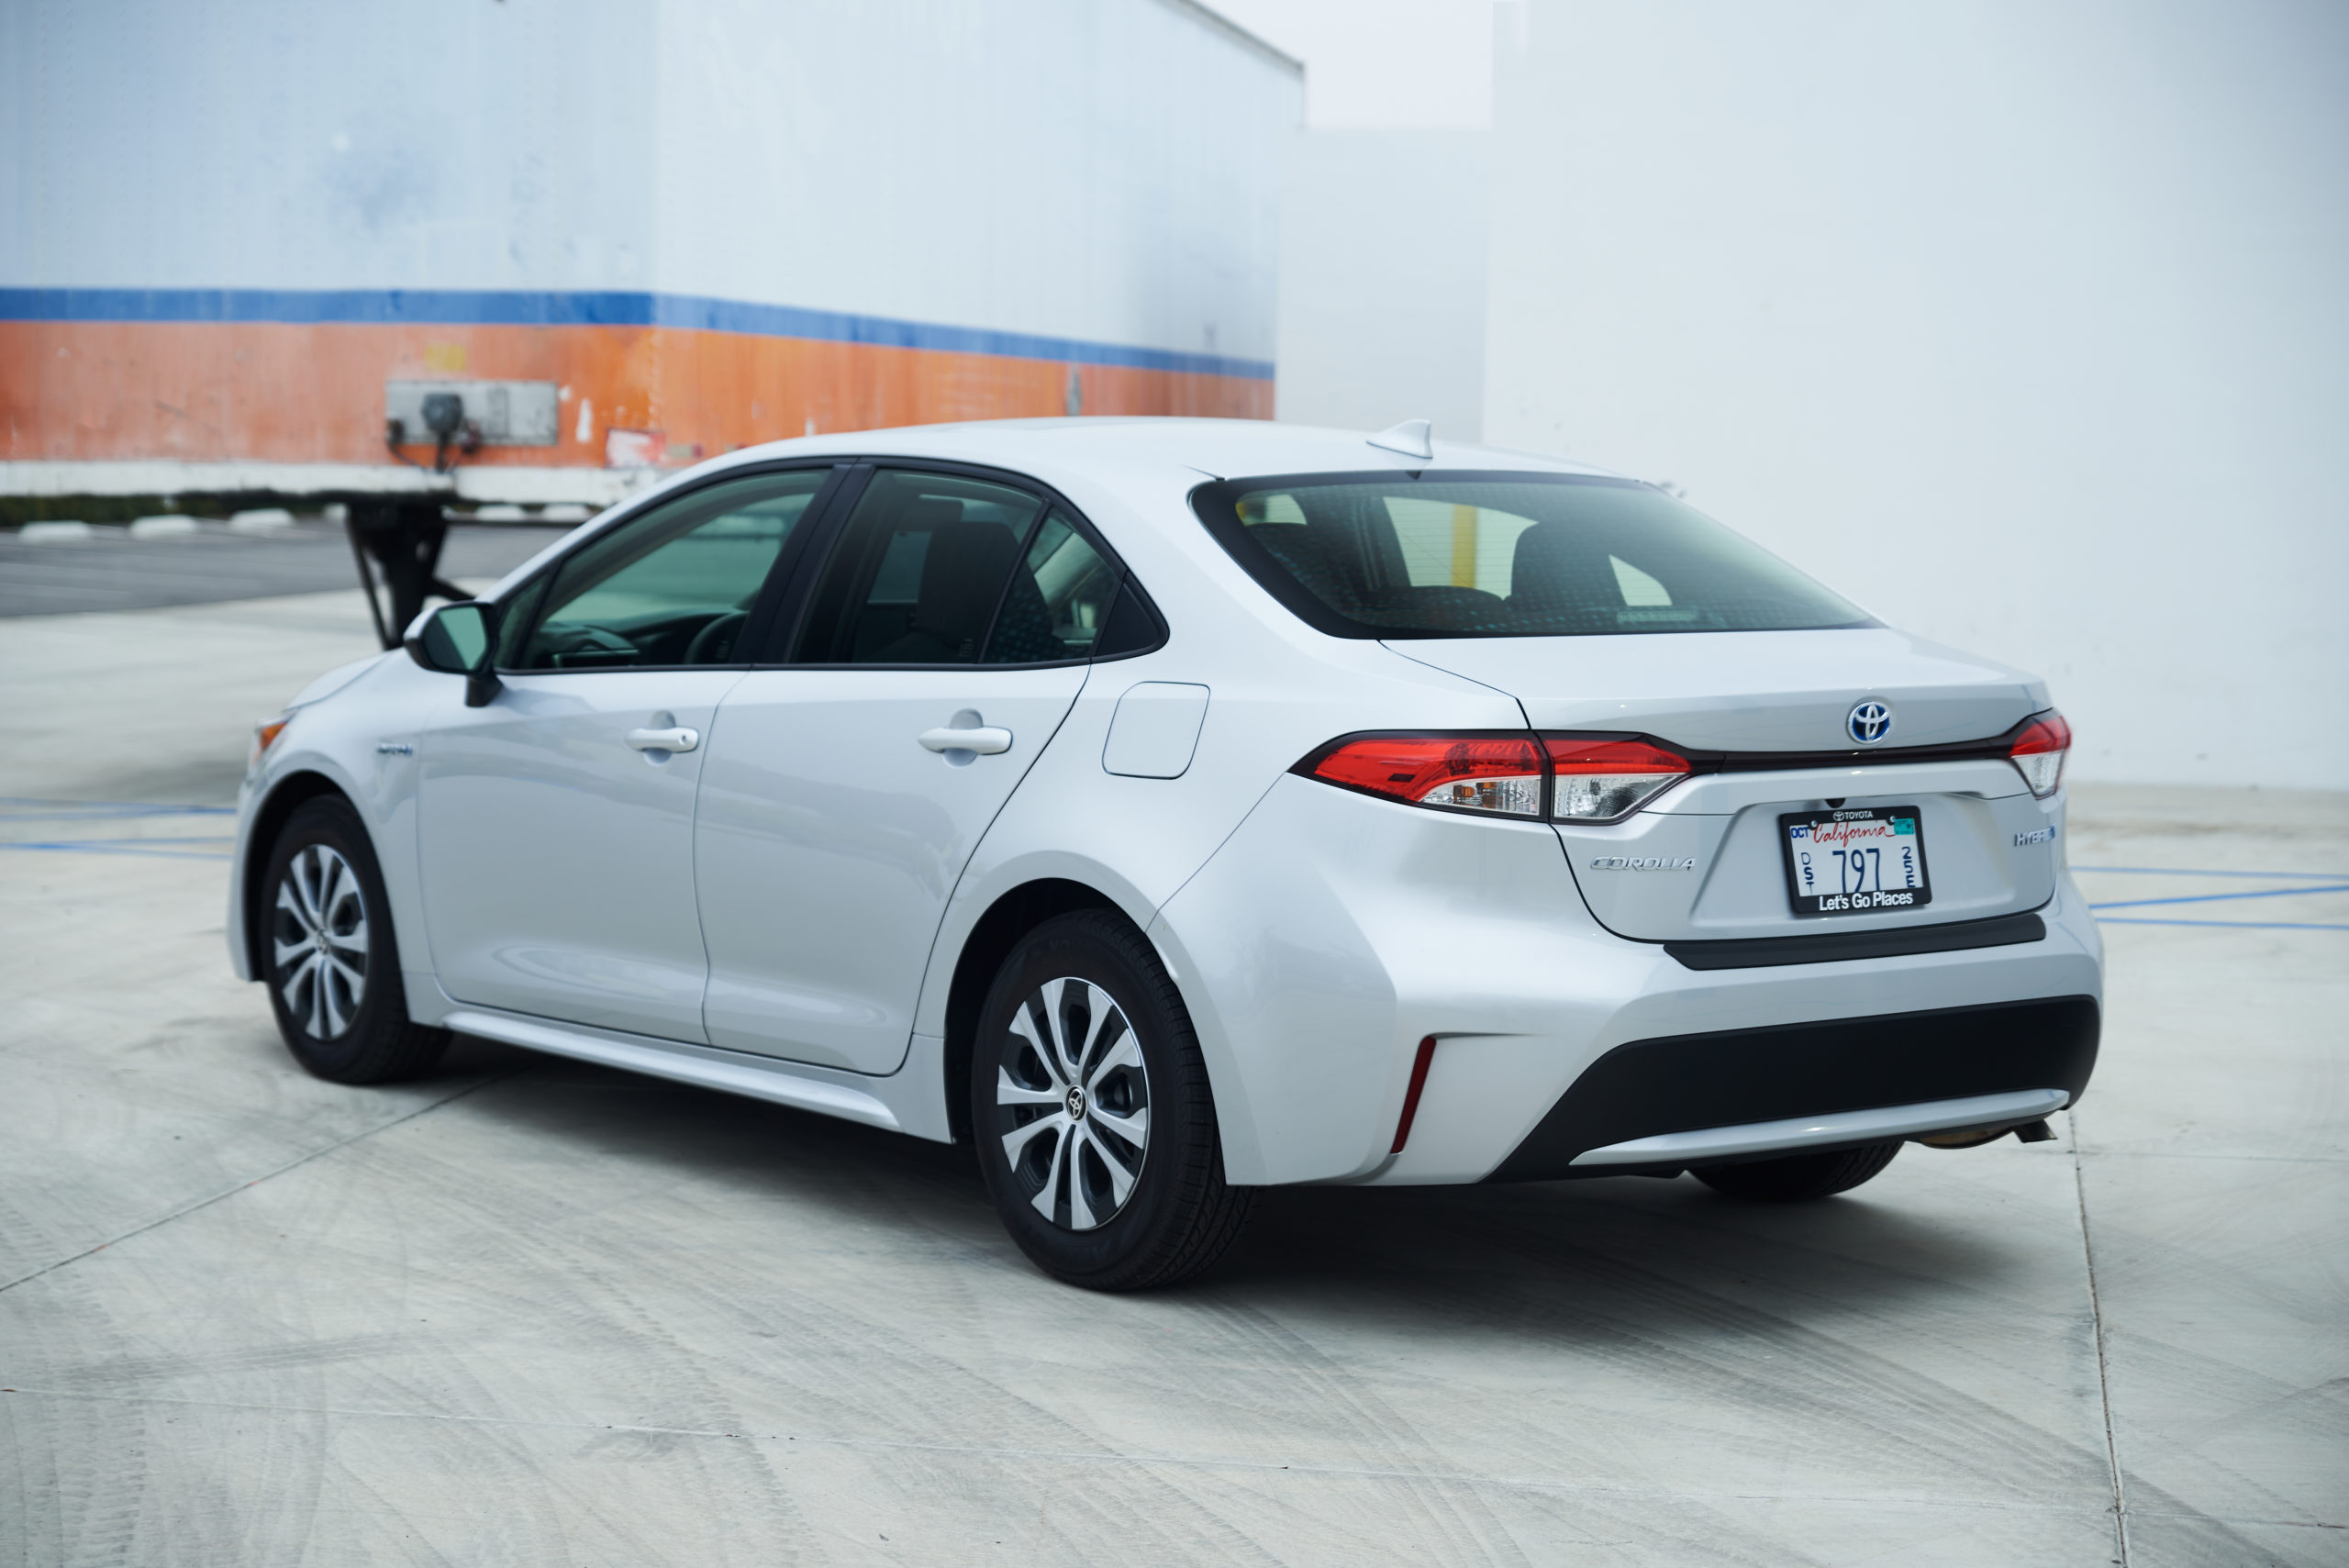 2021 Toyota Corolla Hybrid rear three quarter angle